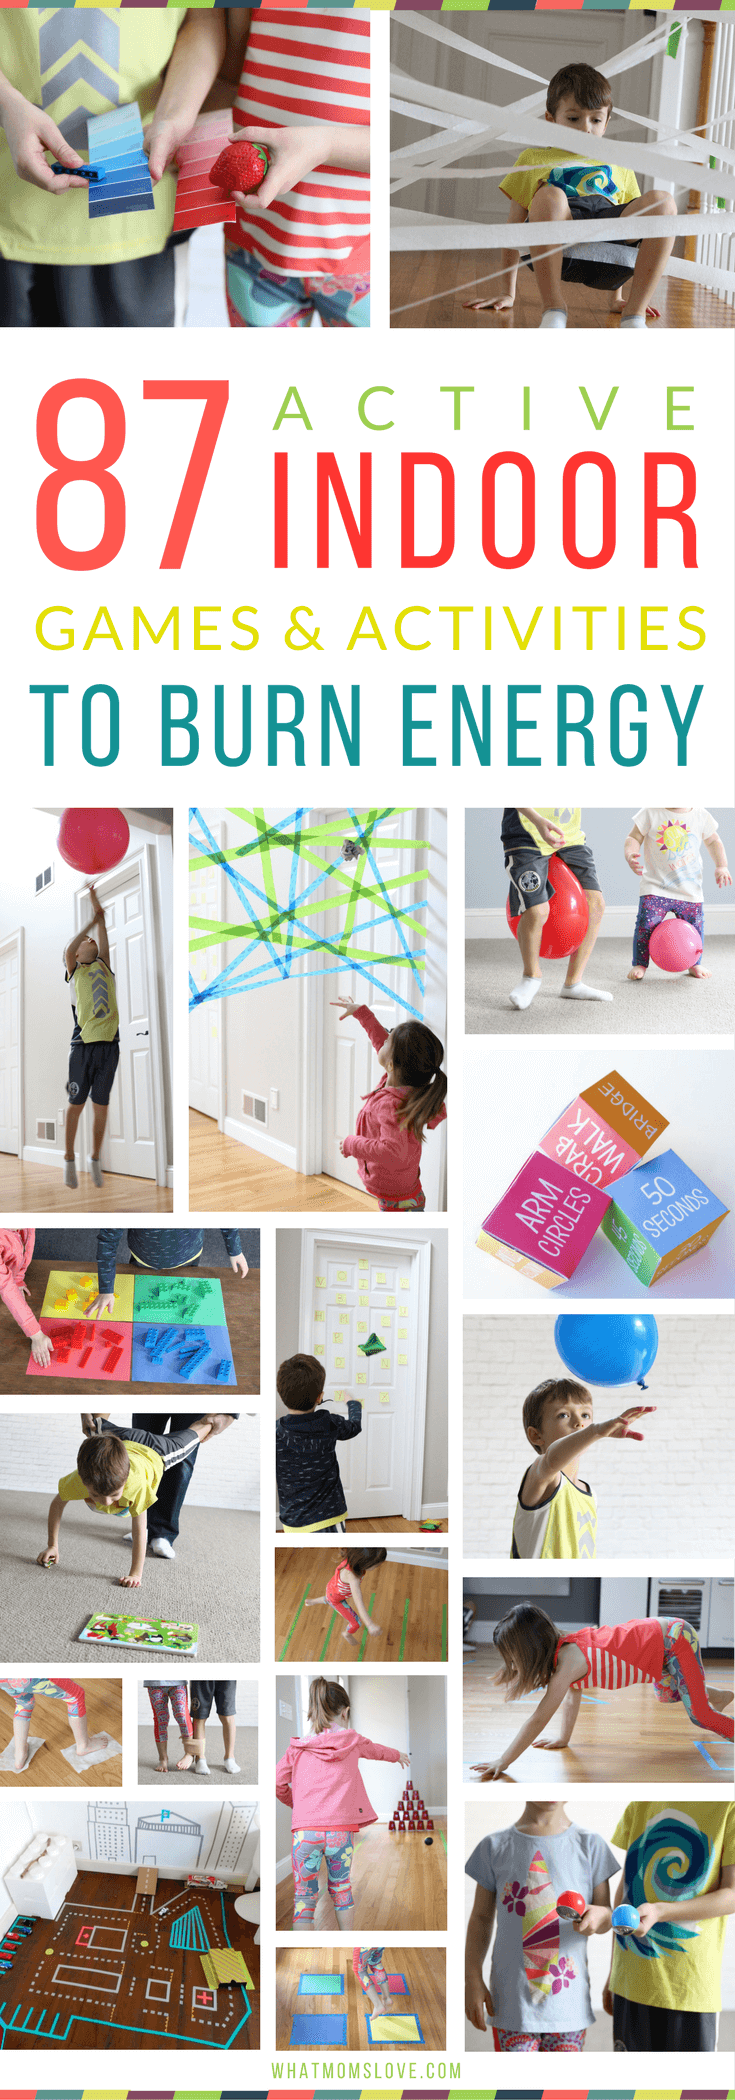 87 Energy-Busting Indoor Games & Activities For Kids